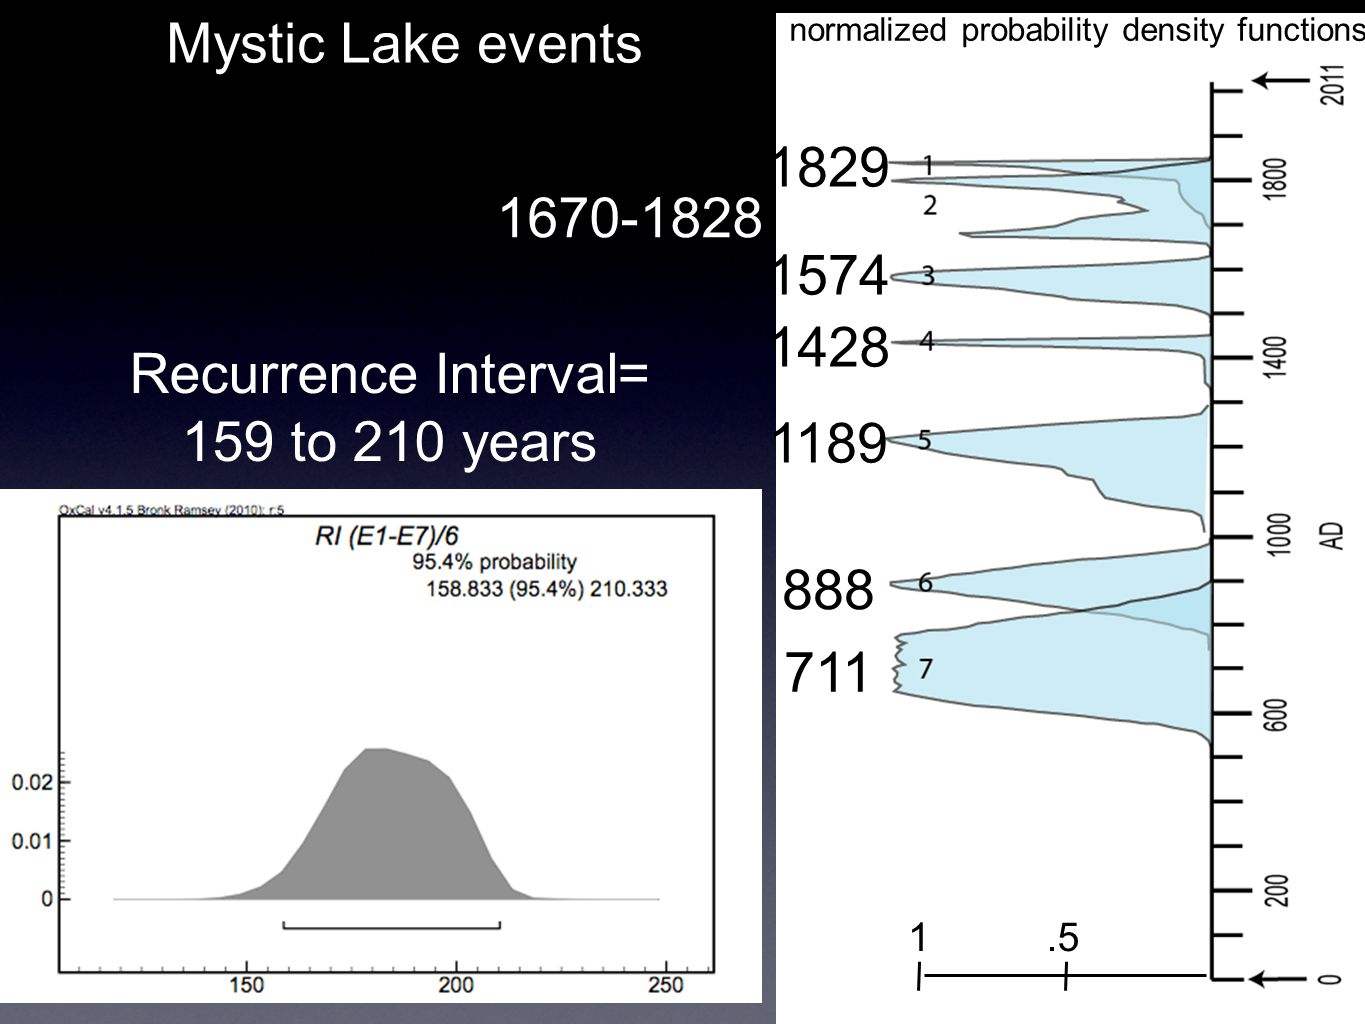 Mystic Lake events normalized probability density functions 1.5 1829 1574 1428 1189 888 711 1670-1828 Recurrence Interval= 159 to 210 years